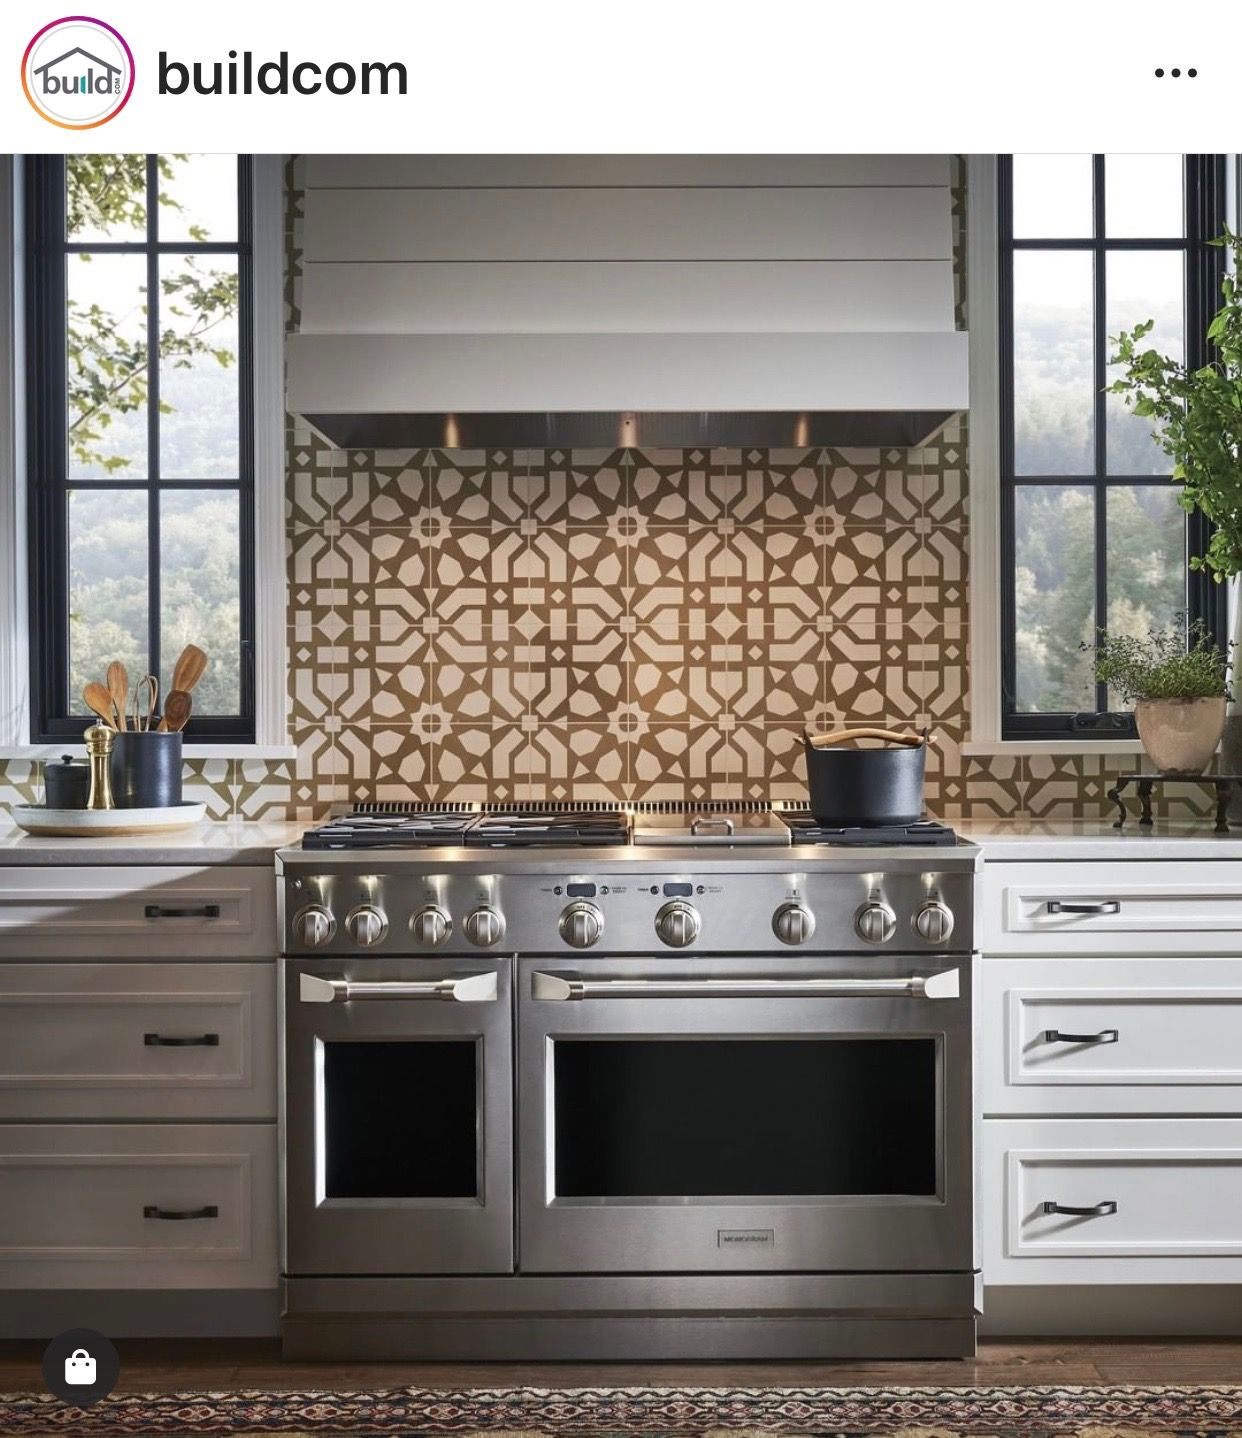 Pin By Rochelle Robinson On Kitchen The Of The Home With Images Monogram Appliances Kitchen Vent Hood Oven Appliance